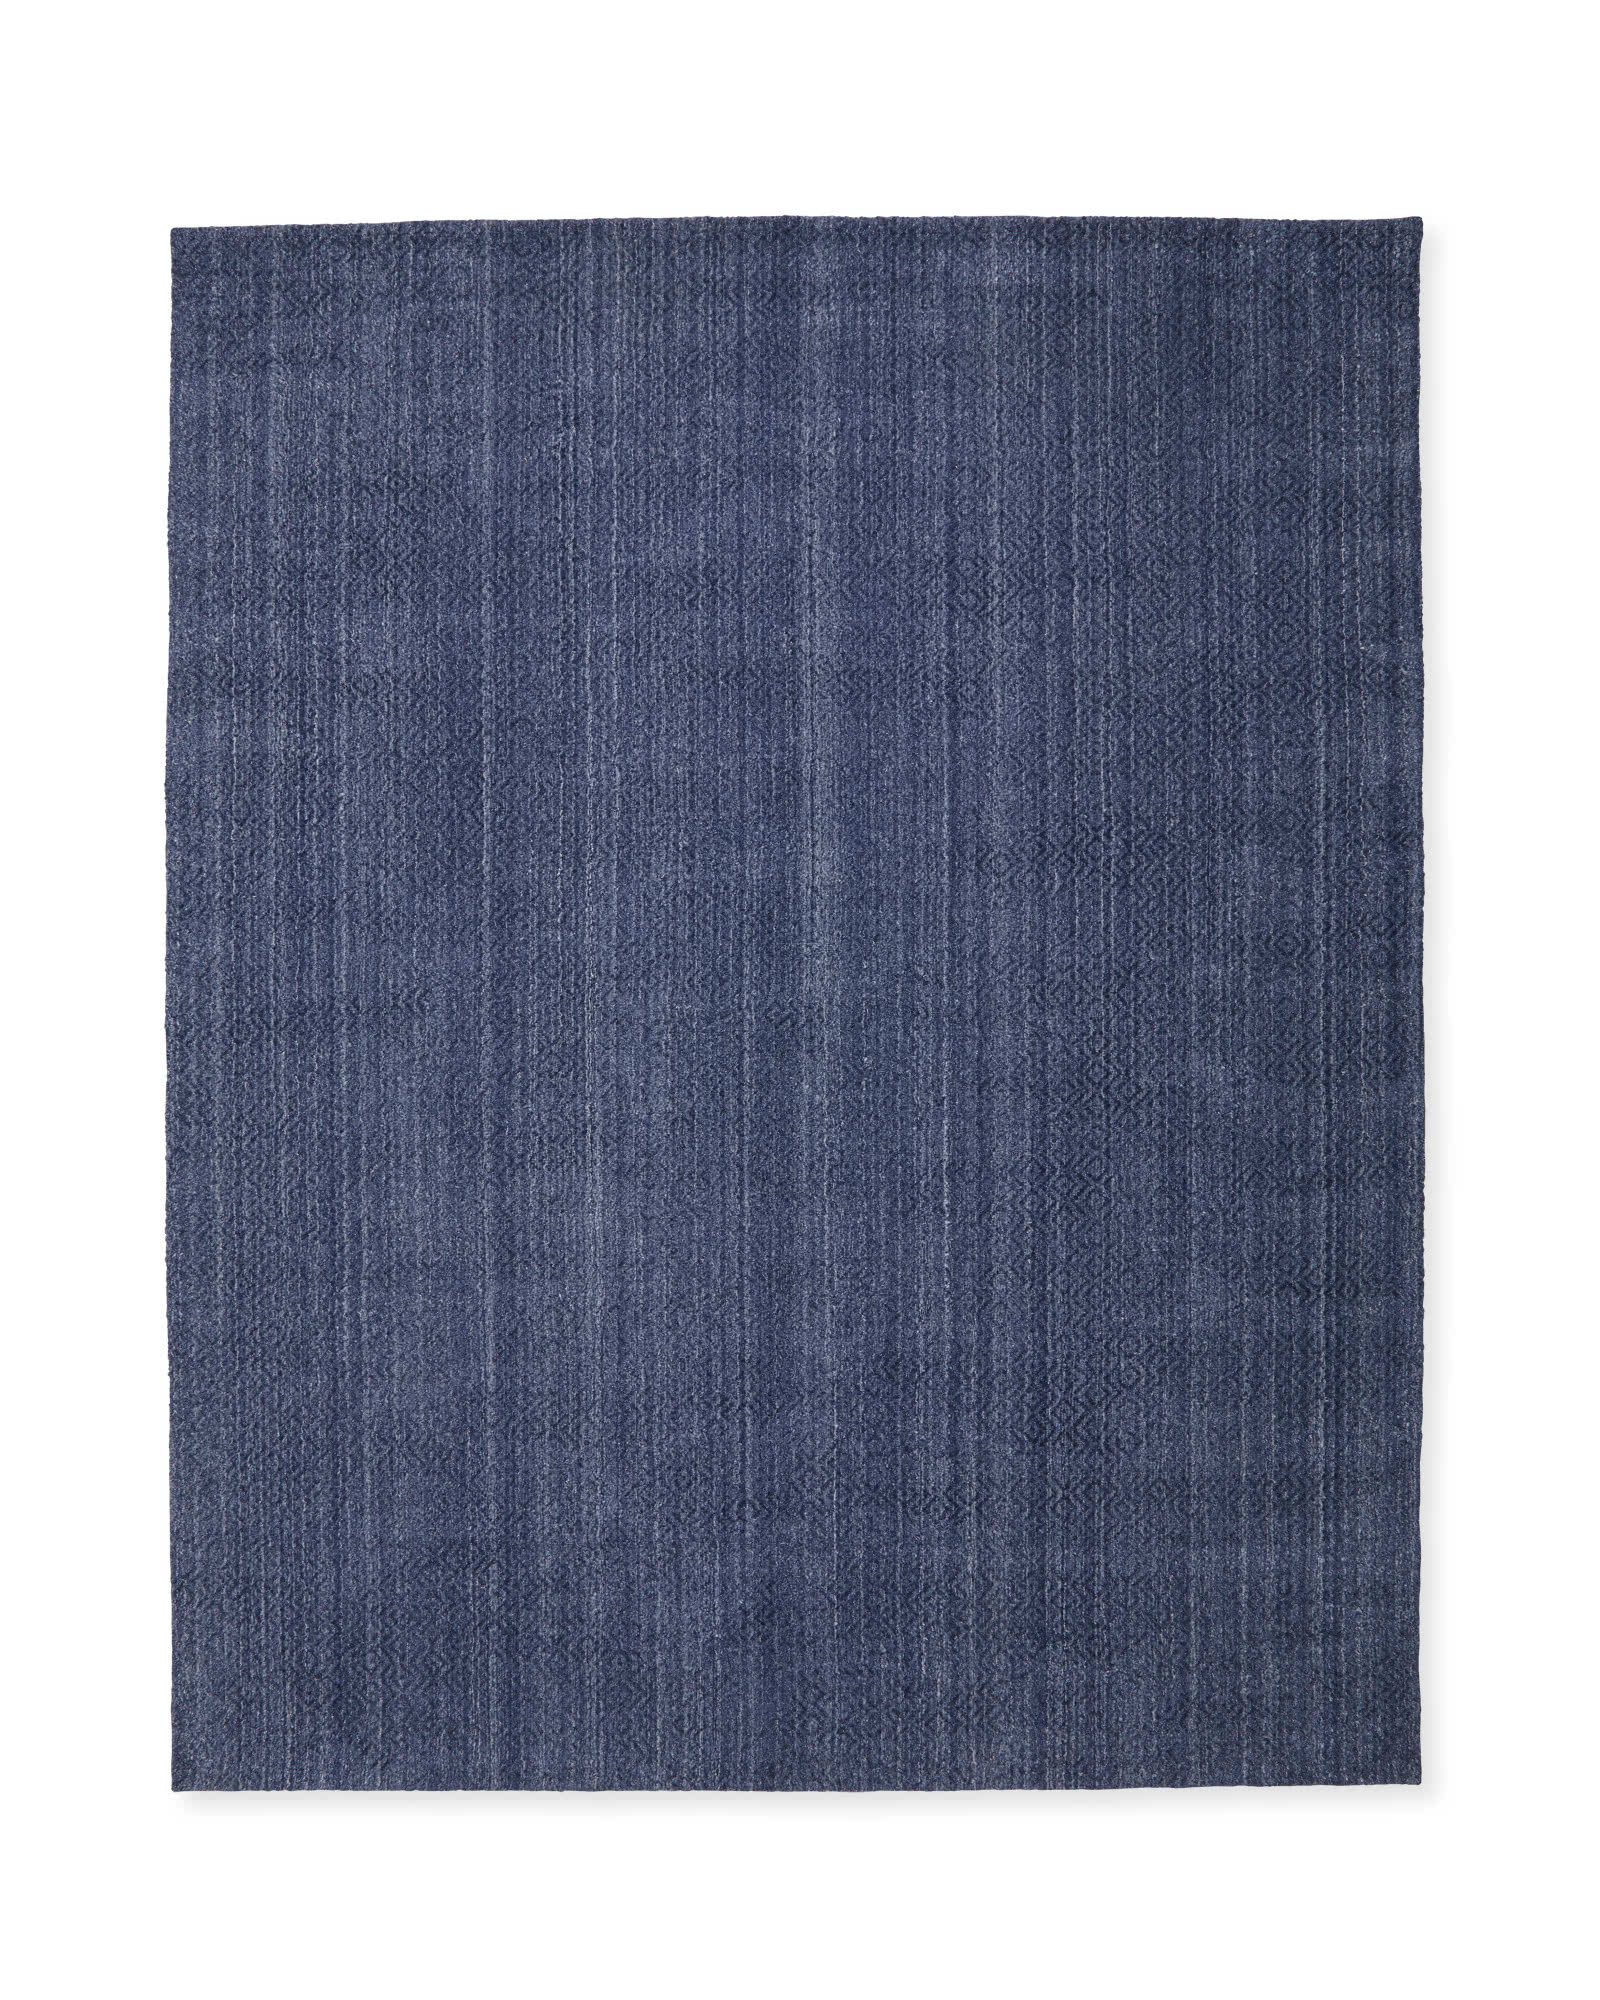 Rapallo Rug, Heathered Navy